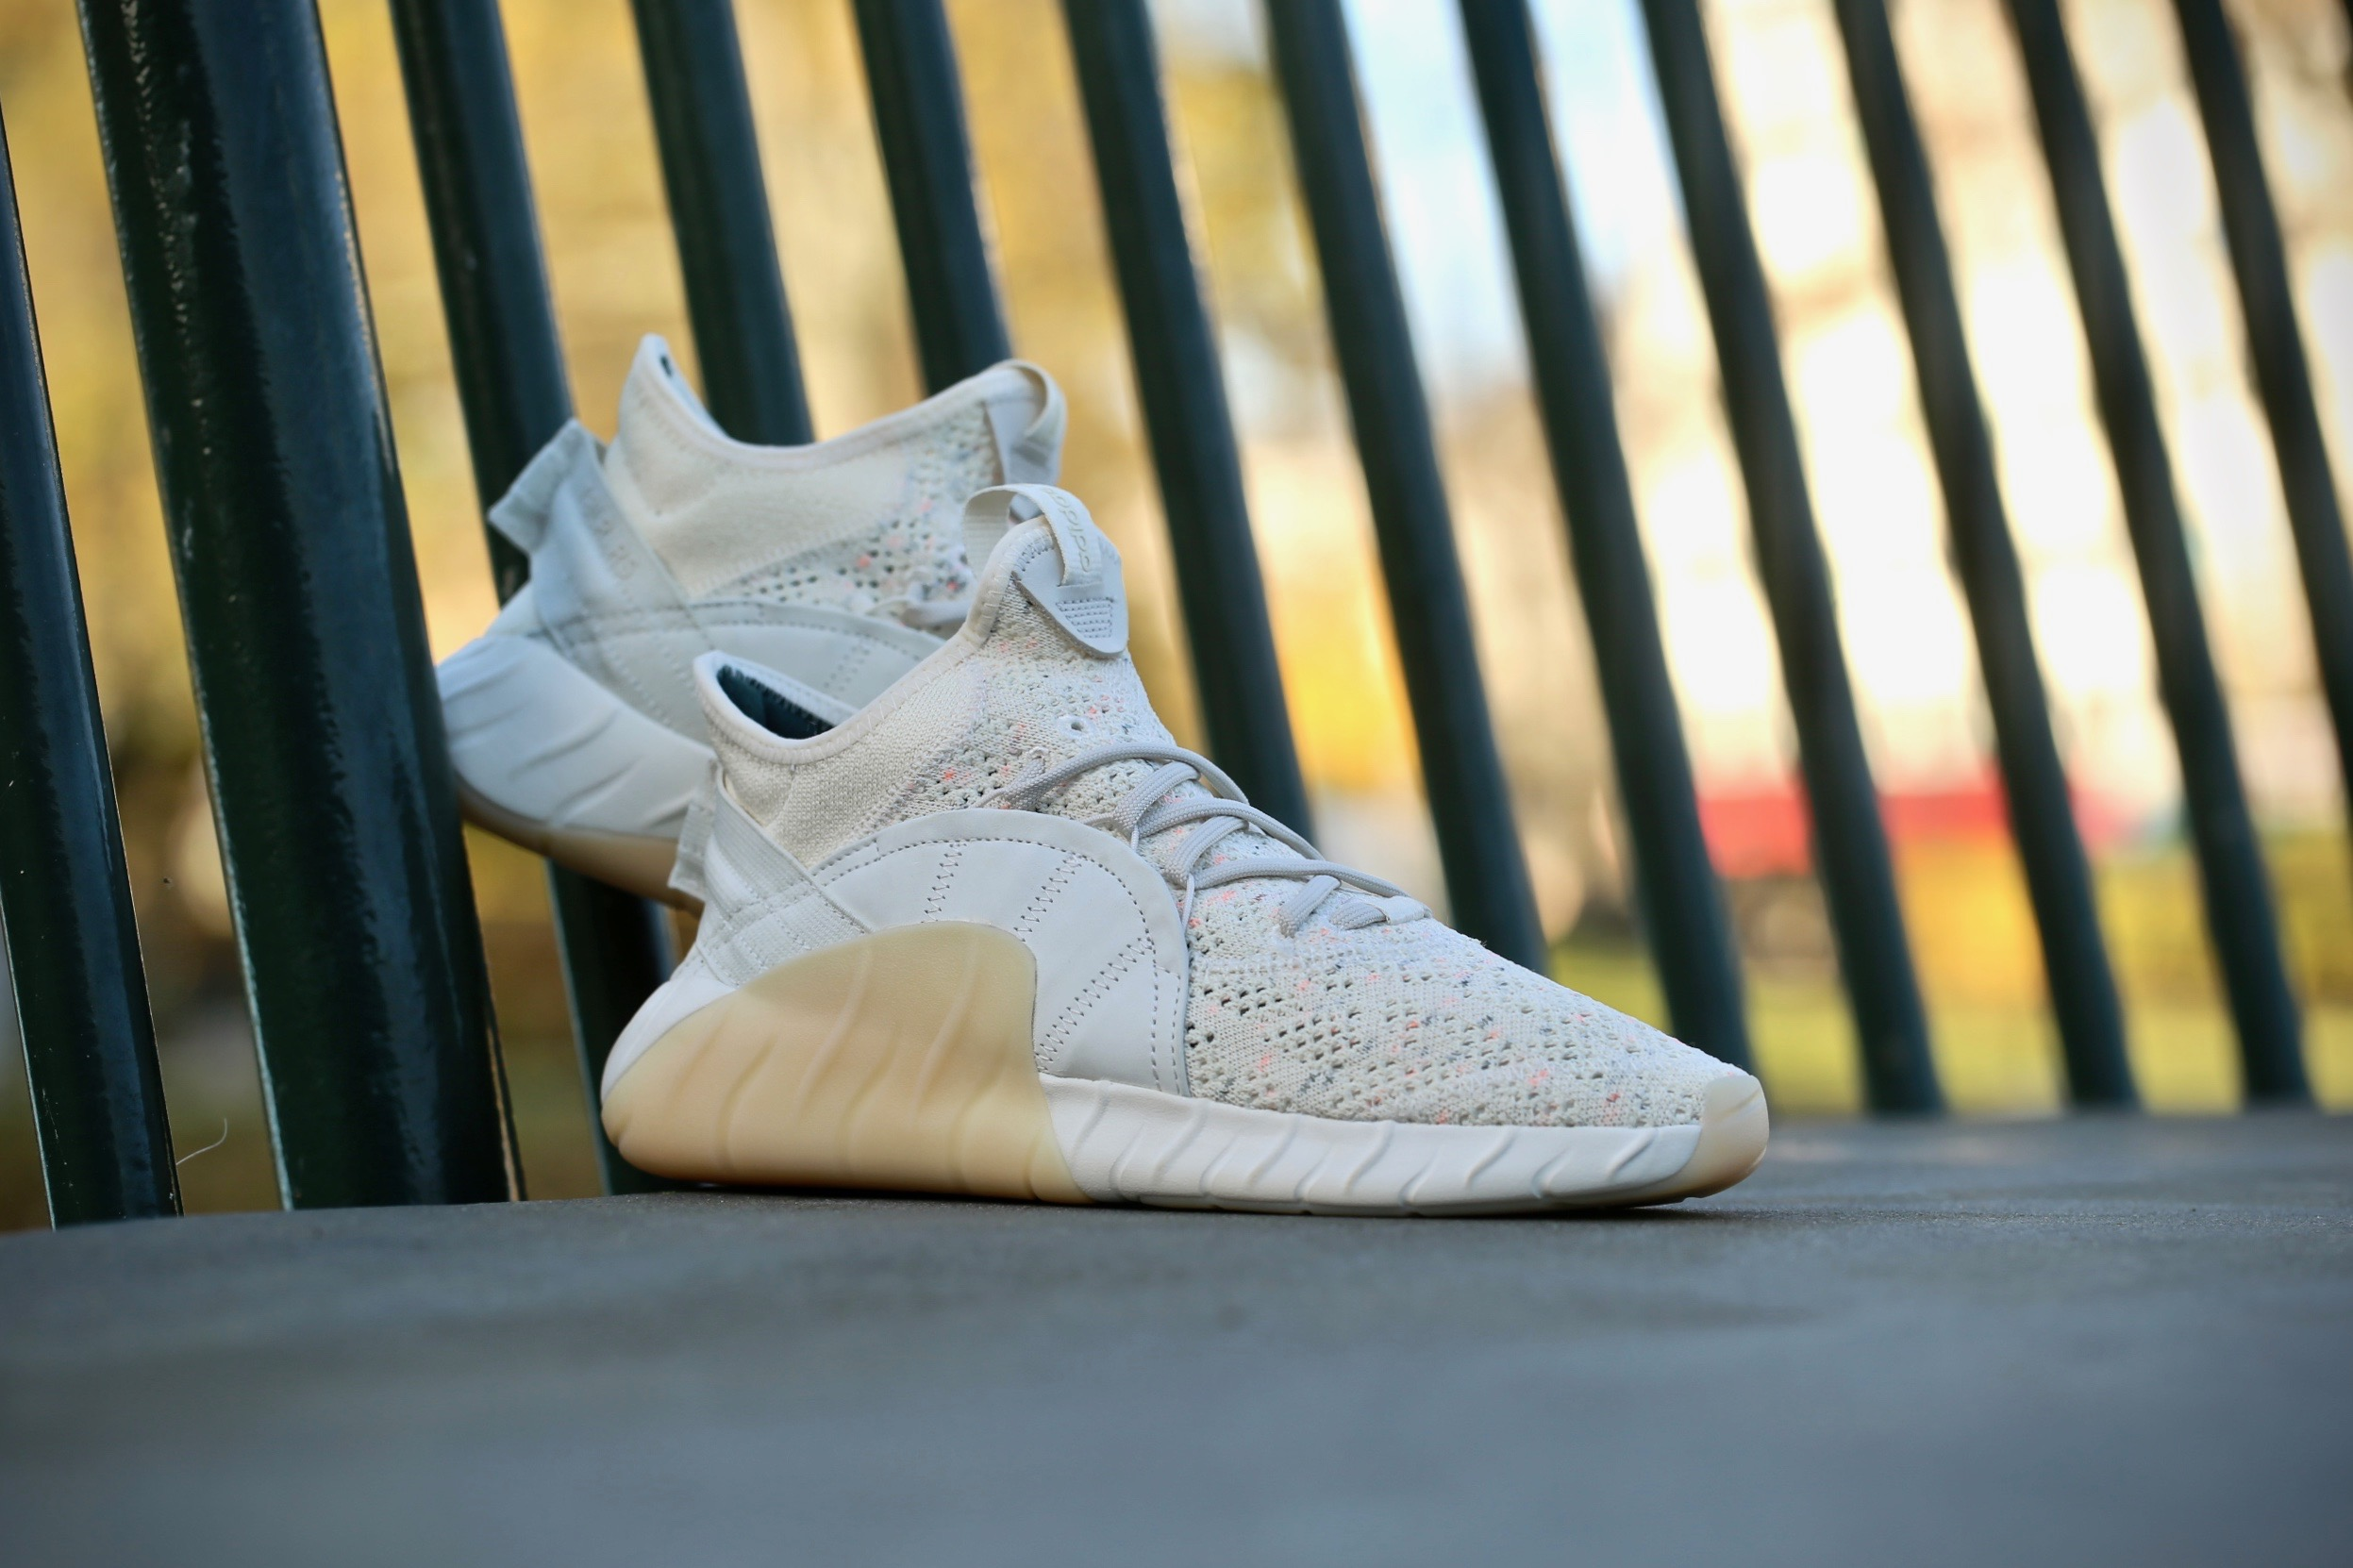 Cheap Adidas NEWS STREAM : Cheap Adidas Originals Tubular Runner New